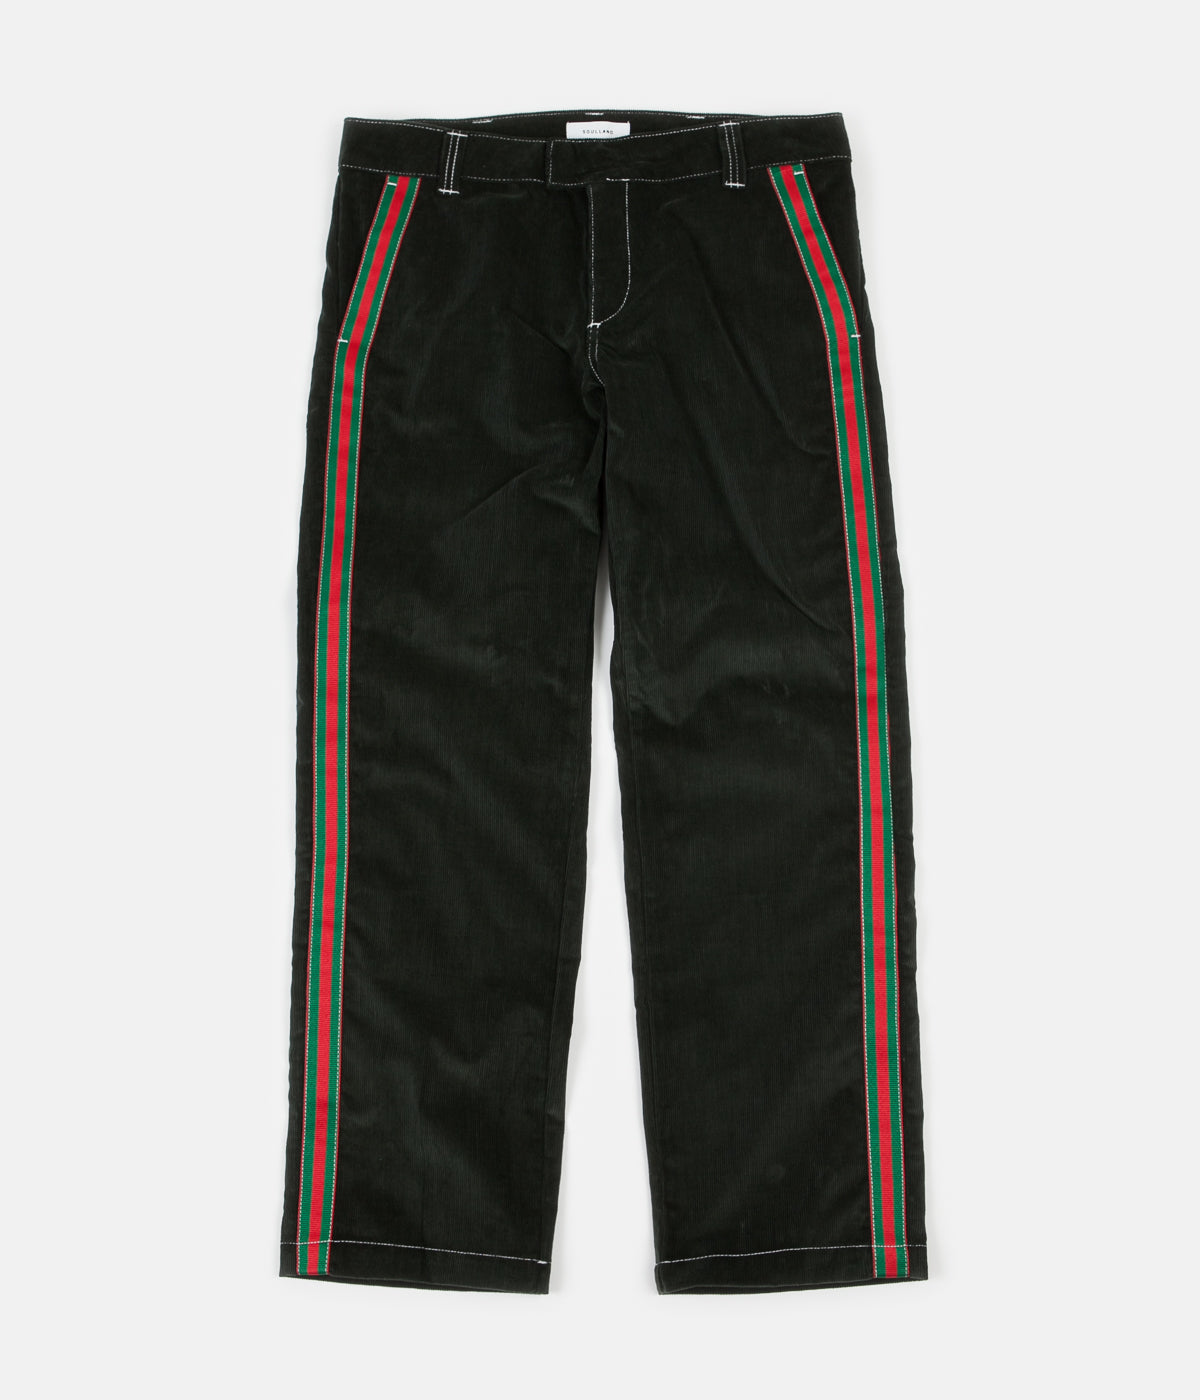 Soulland Greco Corduroy Trousers - Dark Green